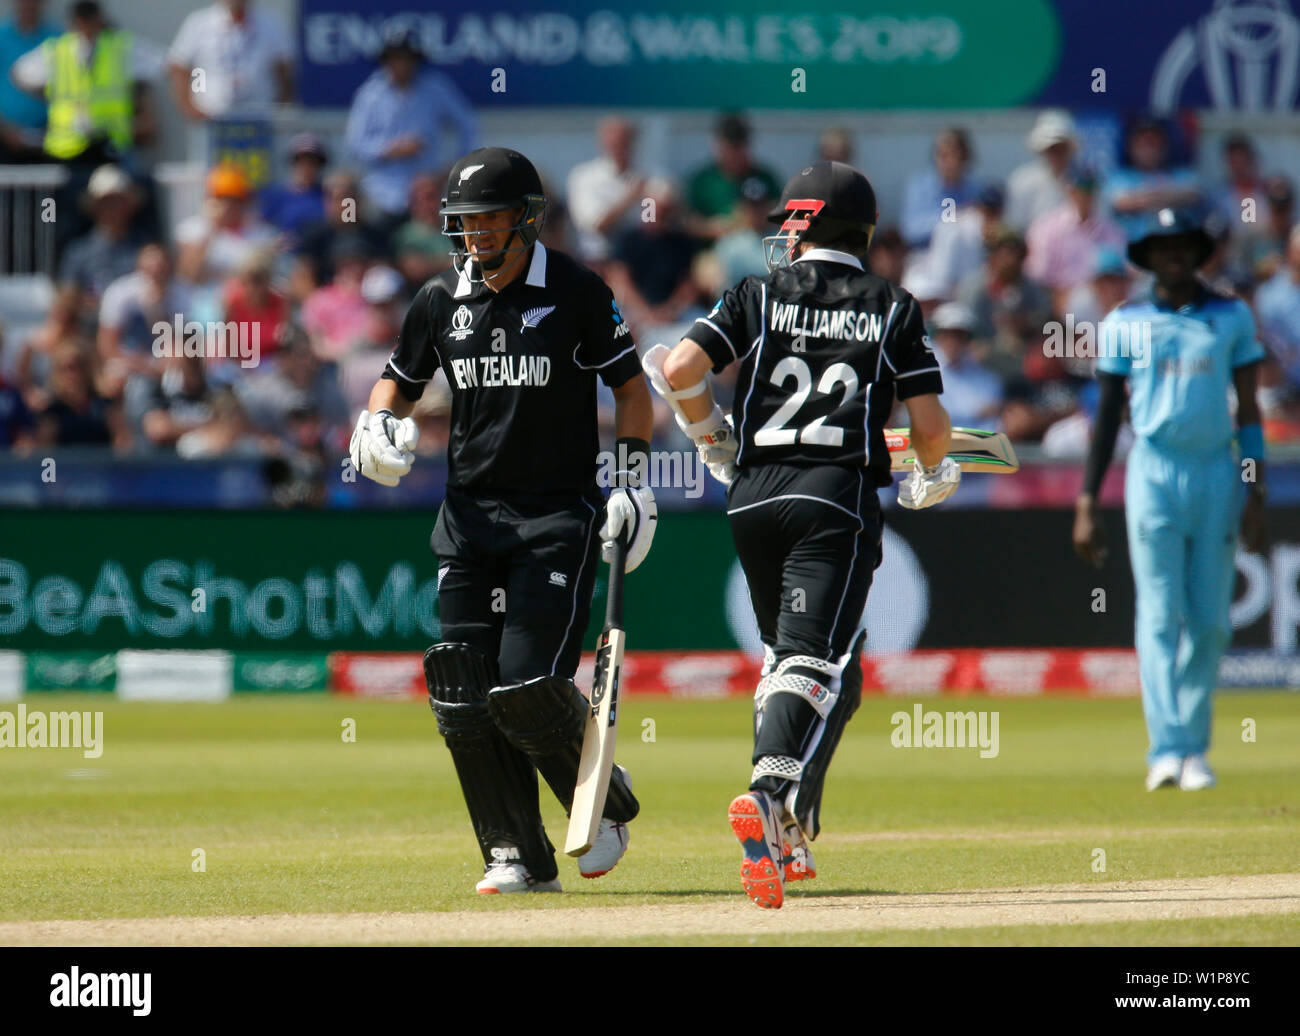 Emirates Riverside, Chester-le-Street, Durham, UK. 3rd July, 2019. ICC World Cup Cricket, England versus New Zealand; Ross Taylor and Kane Williamson steadied the New Zealand innings after the early losses of Henry Nicholls and Martin Guptill Credit: Action Plus Sports/Alamy Live News - Stock Image